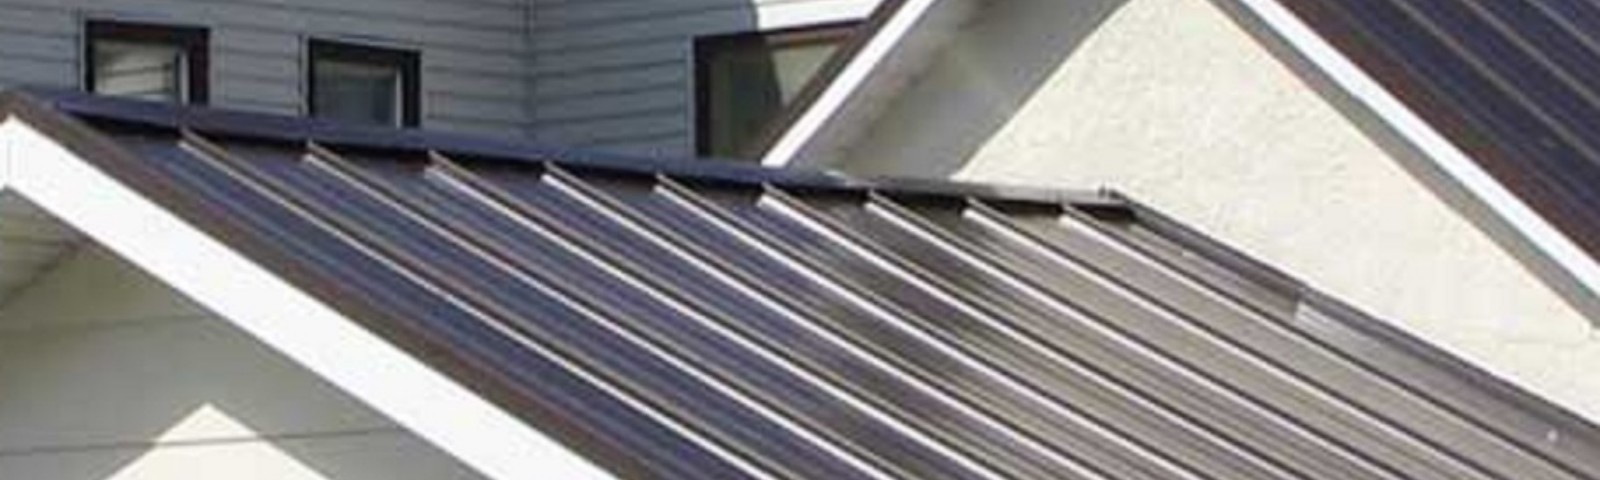 Metal Roof Painting Evelyn Amelia Medium